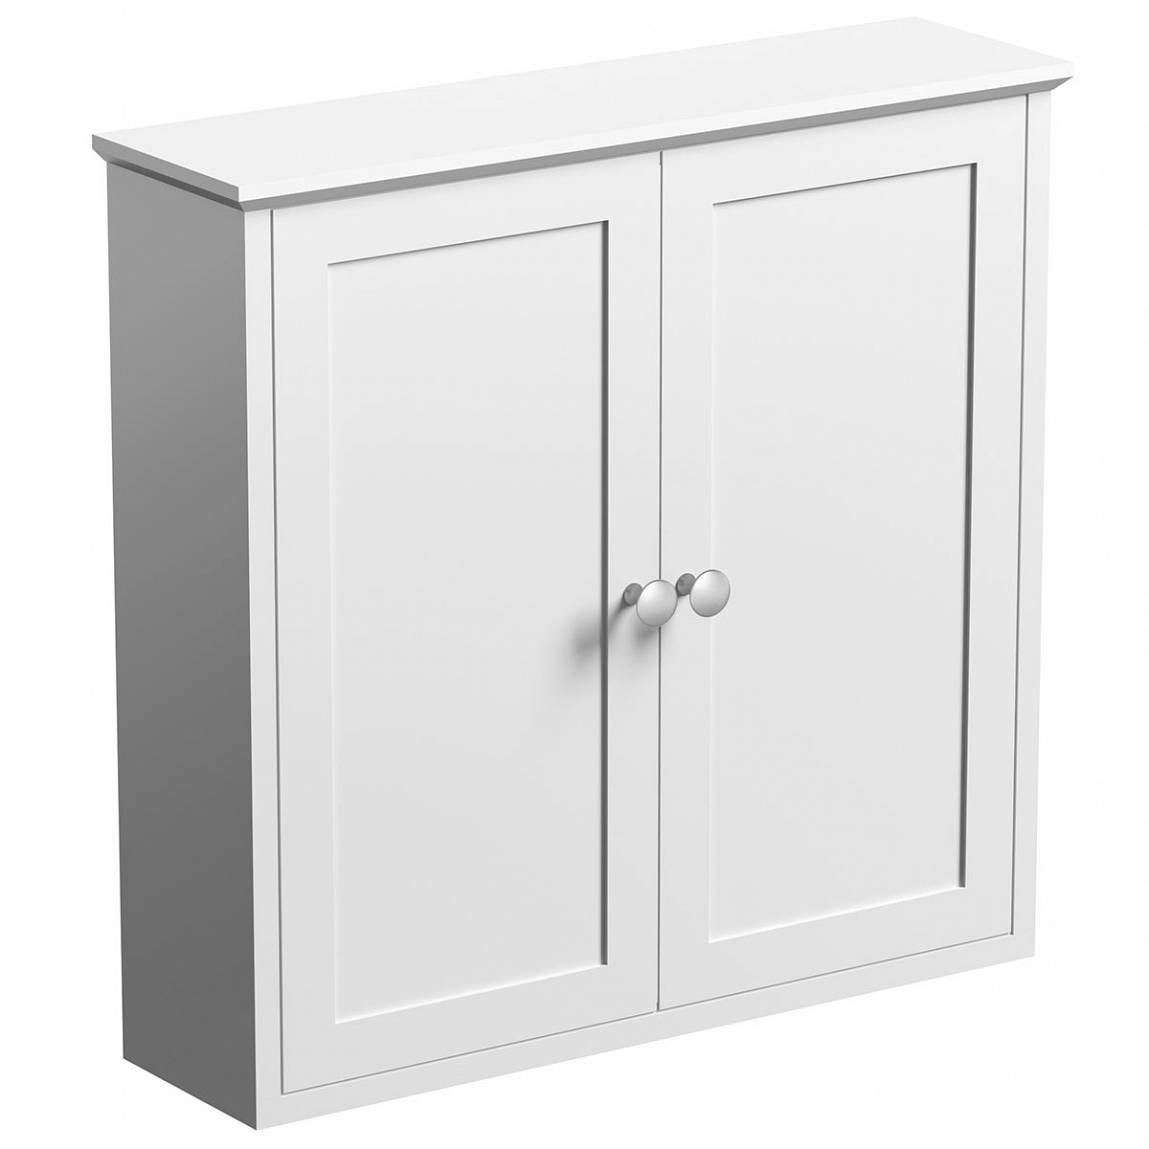 white wall mounted bathroom cabinets camberley white wall mounted cabinet wall mounted 24698 | b93de76b3fdab8a0d6db940be8e5eab8